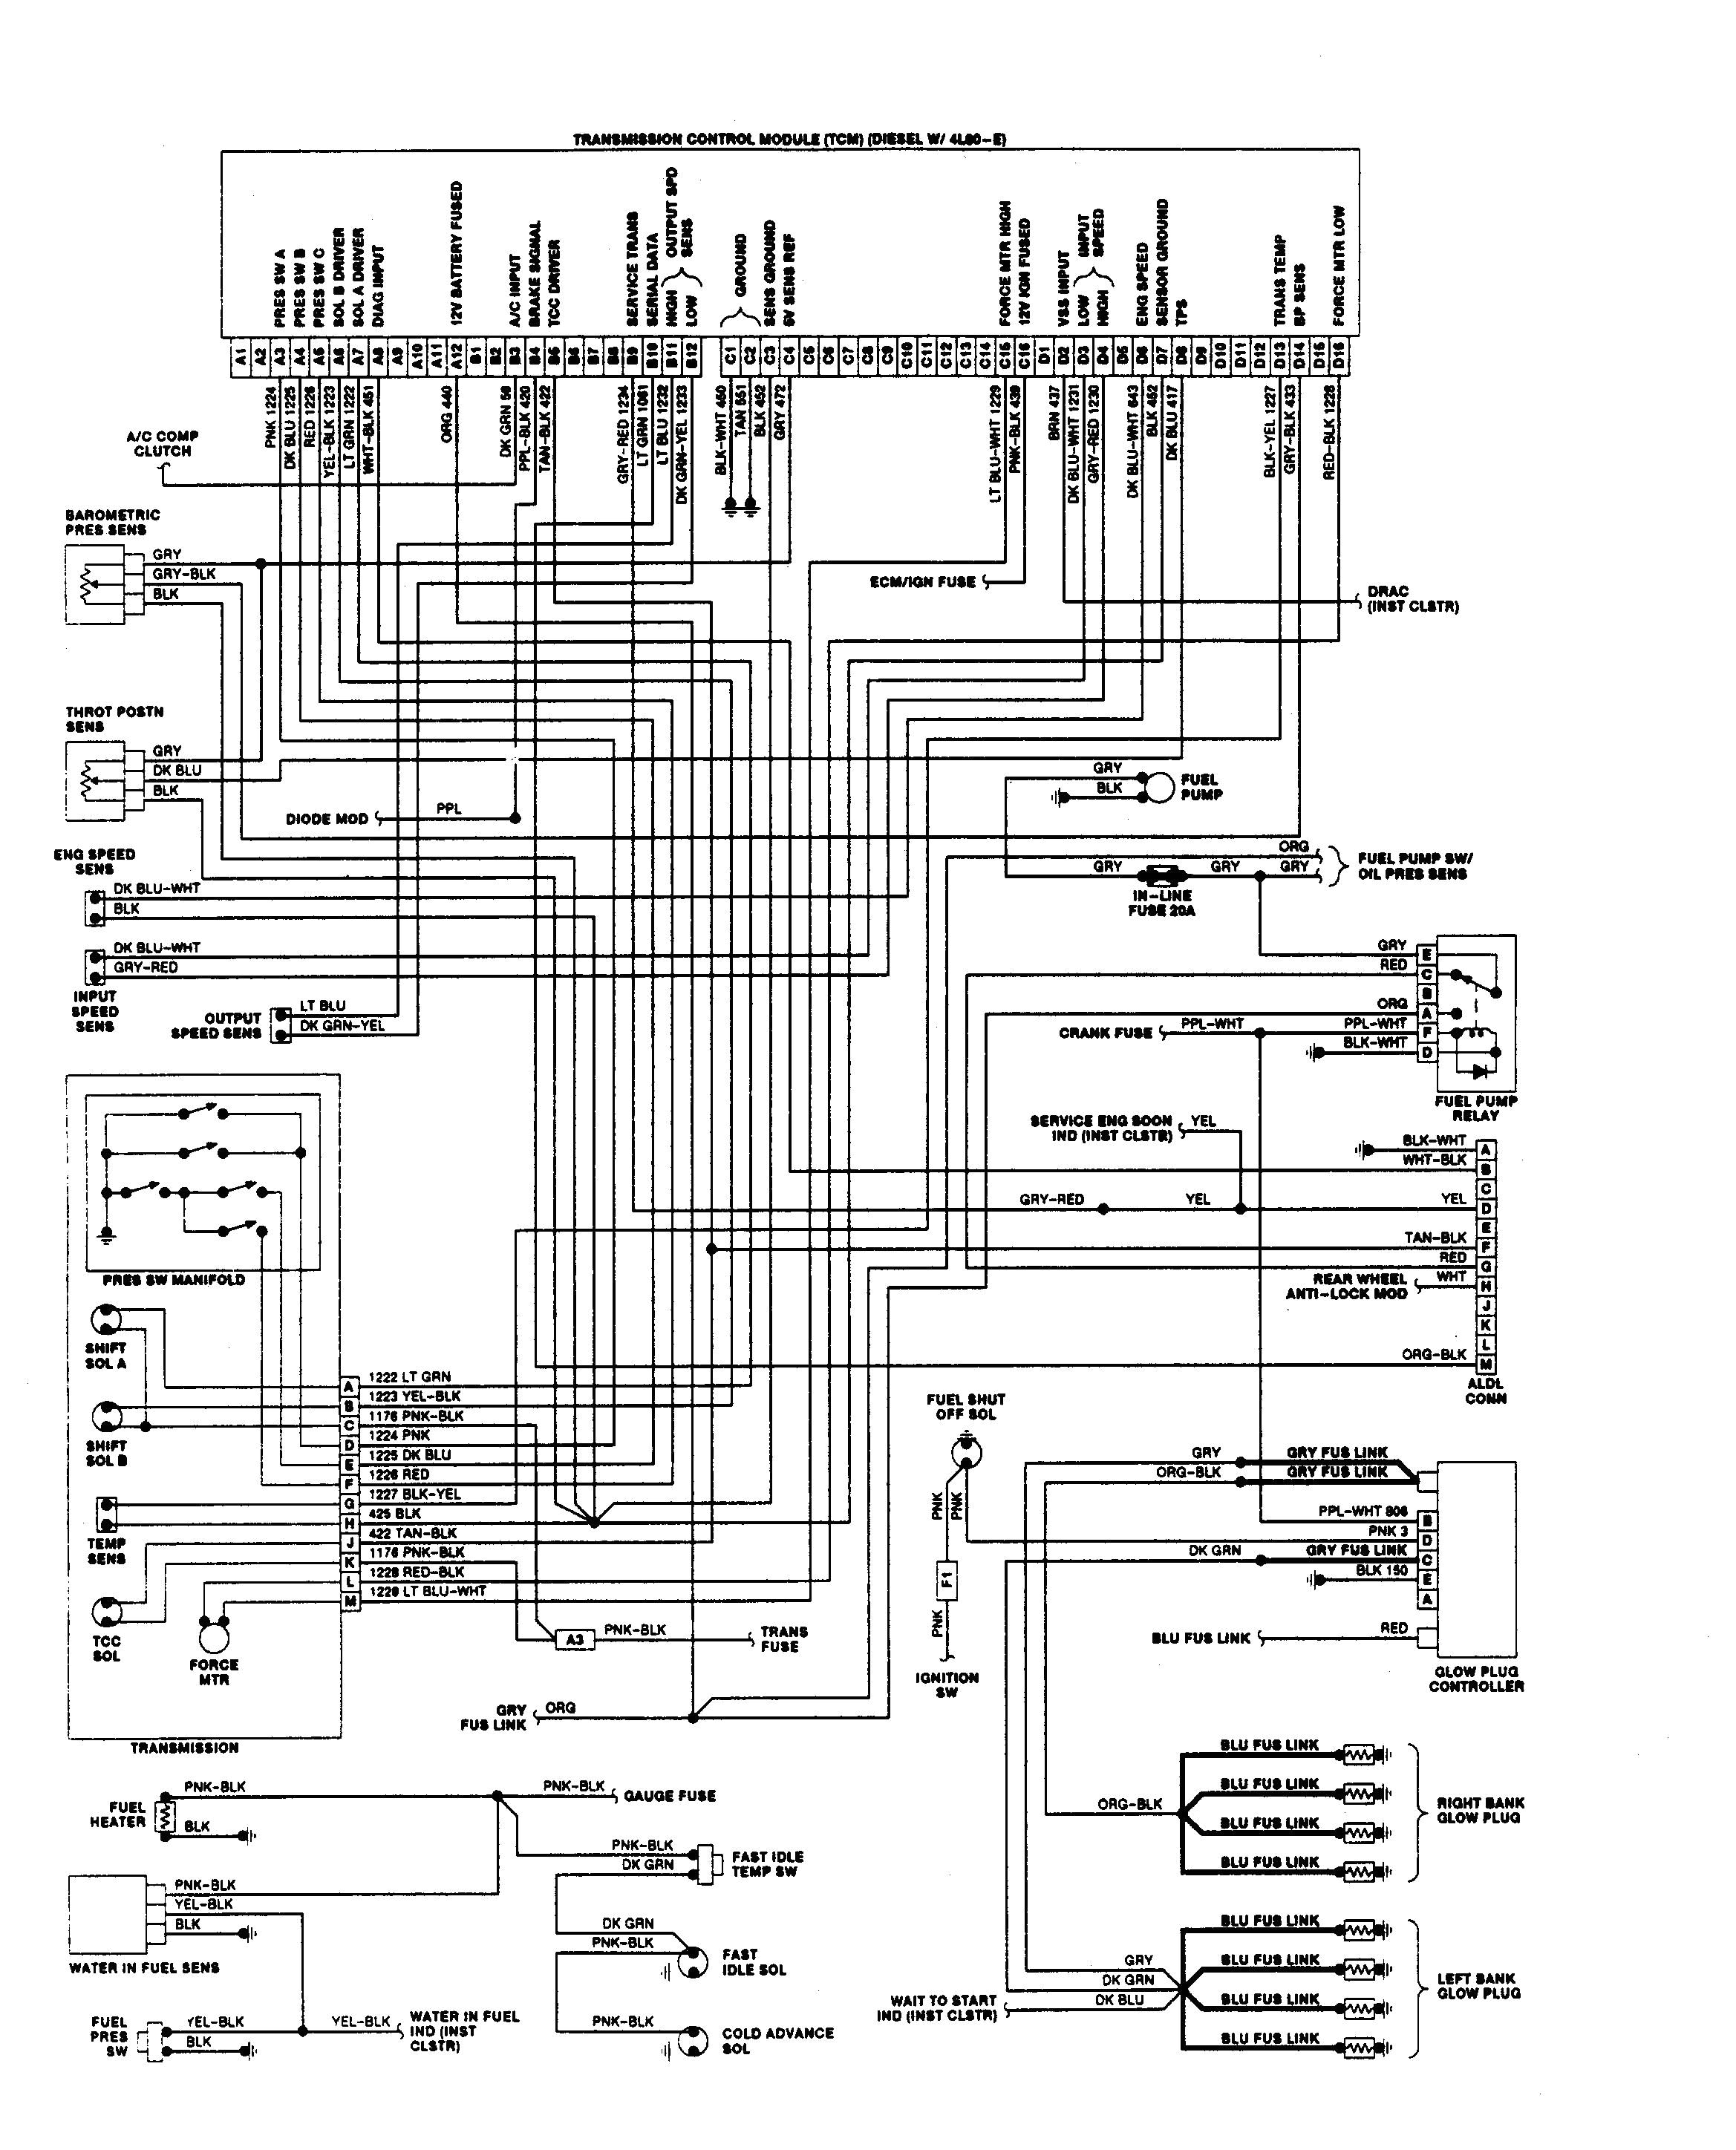 1991 chevy p30 wiring diagrams wiring diagrams schematics1991 chevy p30 wiring diagrams